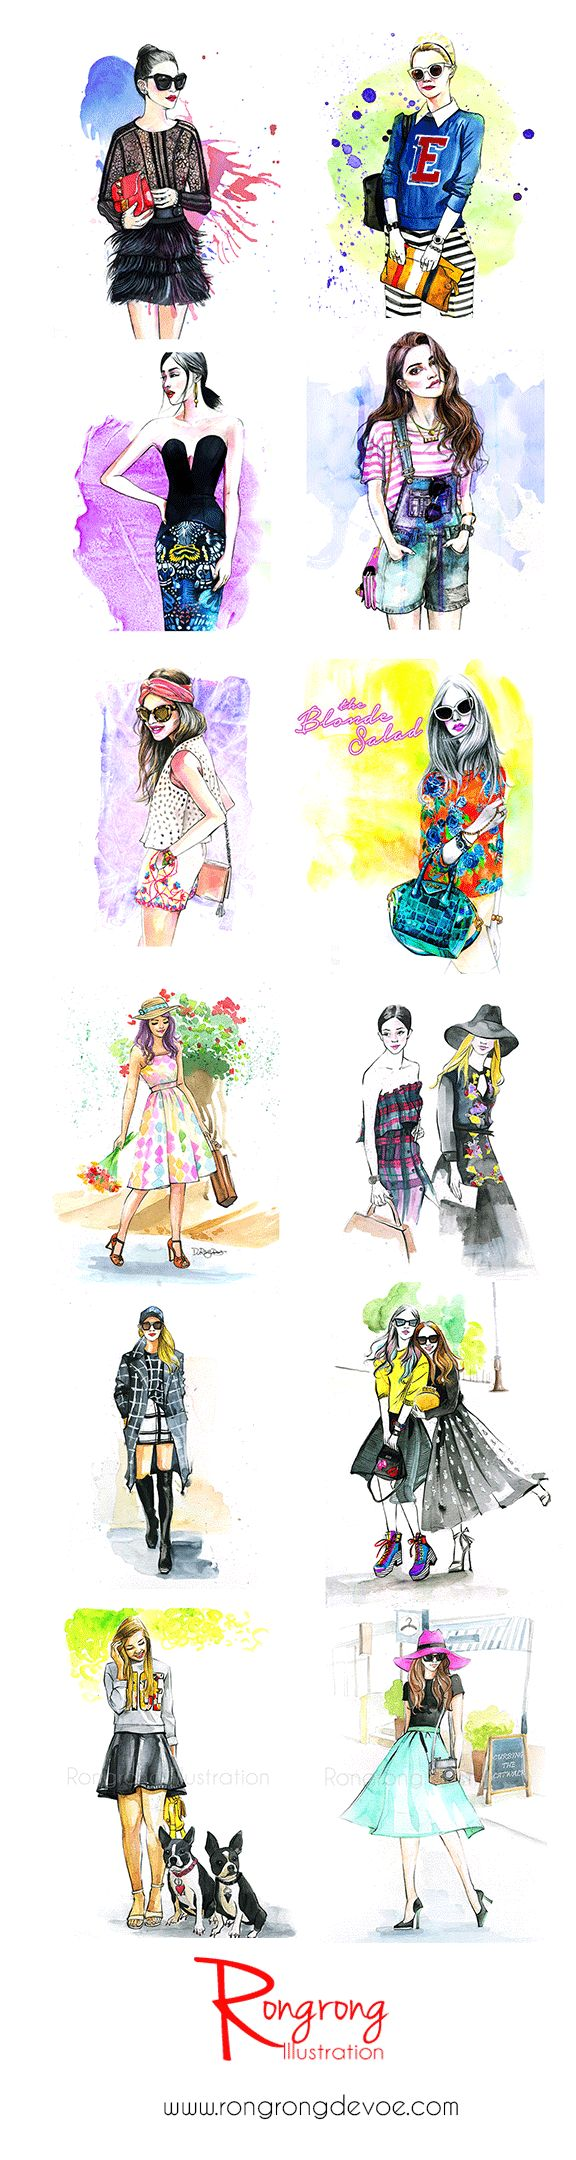 Fashion illustrations inspired by fashion bloggers by Houston fashion illustrator Rongrong DeVoe | www.rongrongdevoe.com